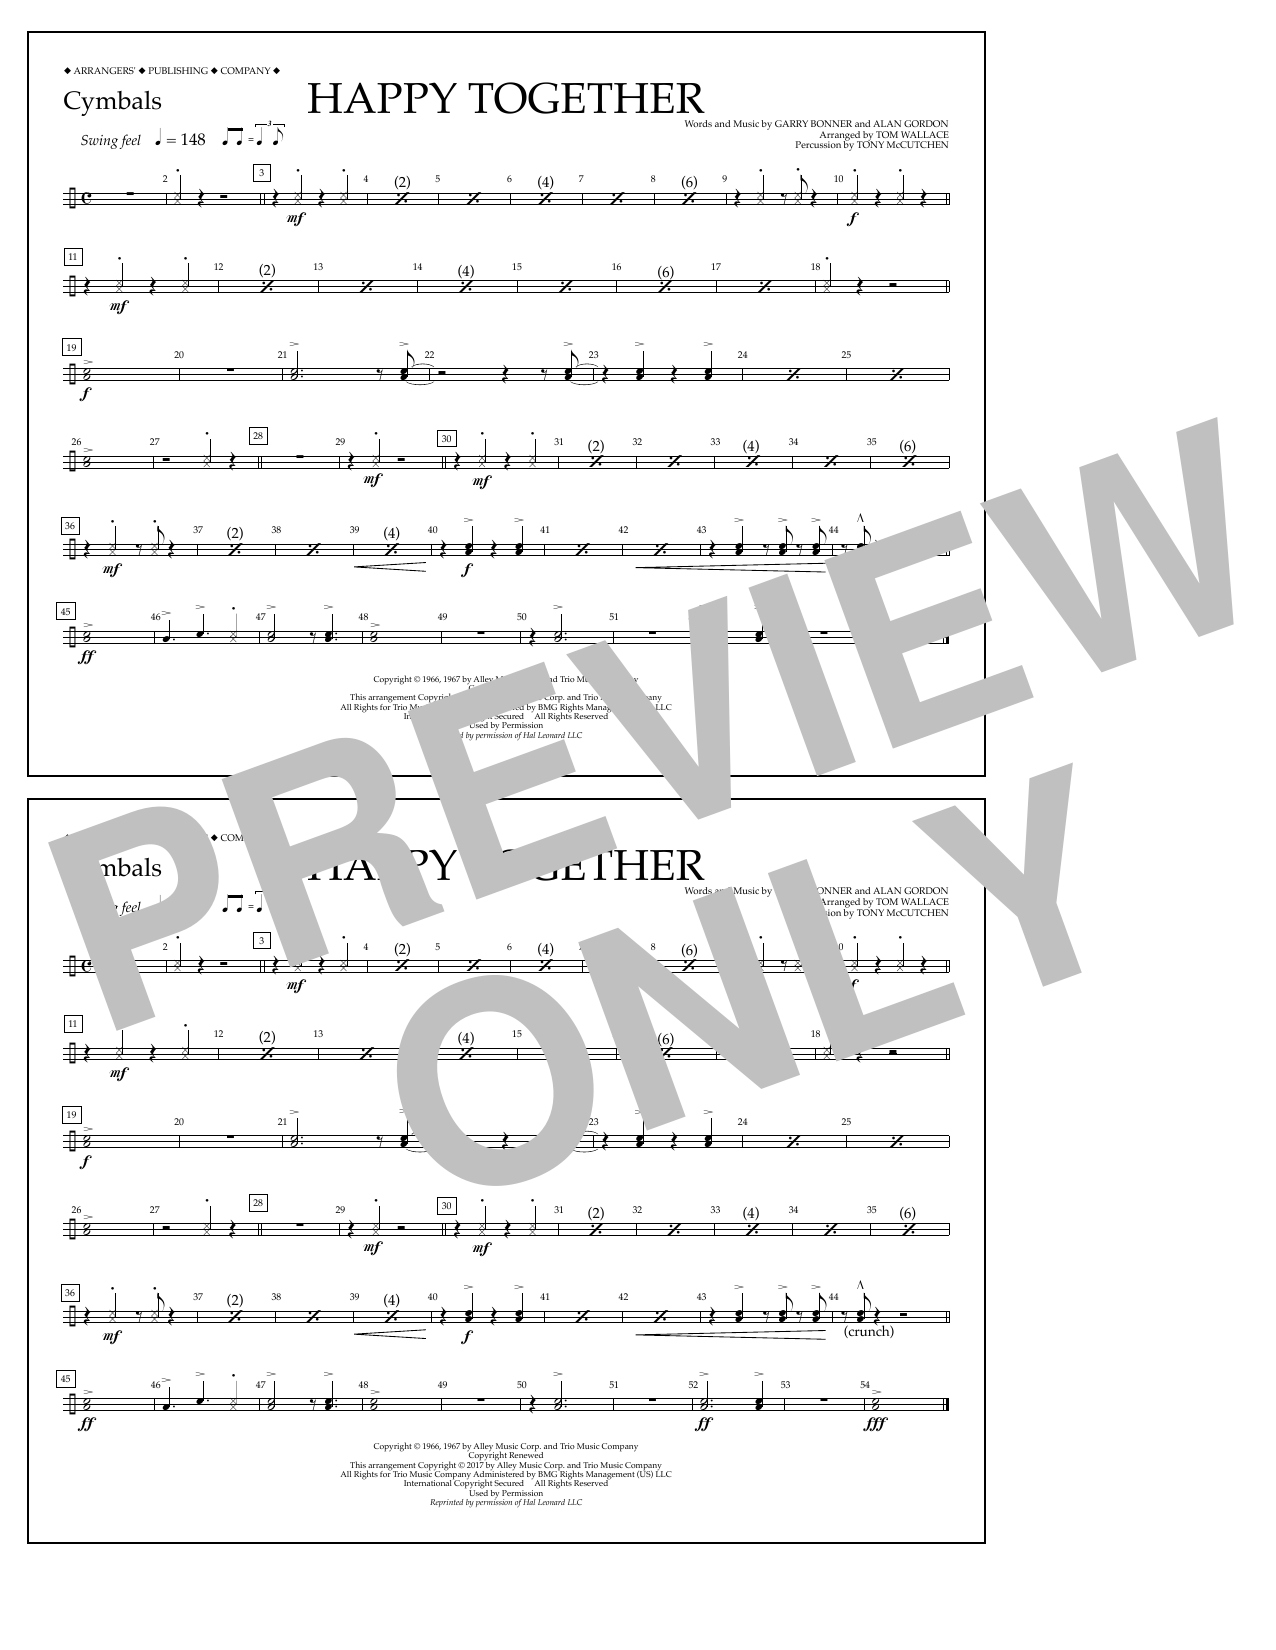 Happy Together - Cymbals Sheet Music